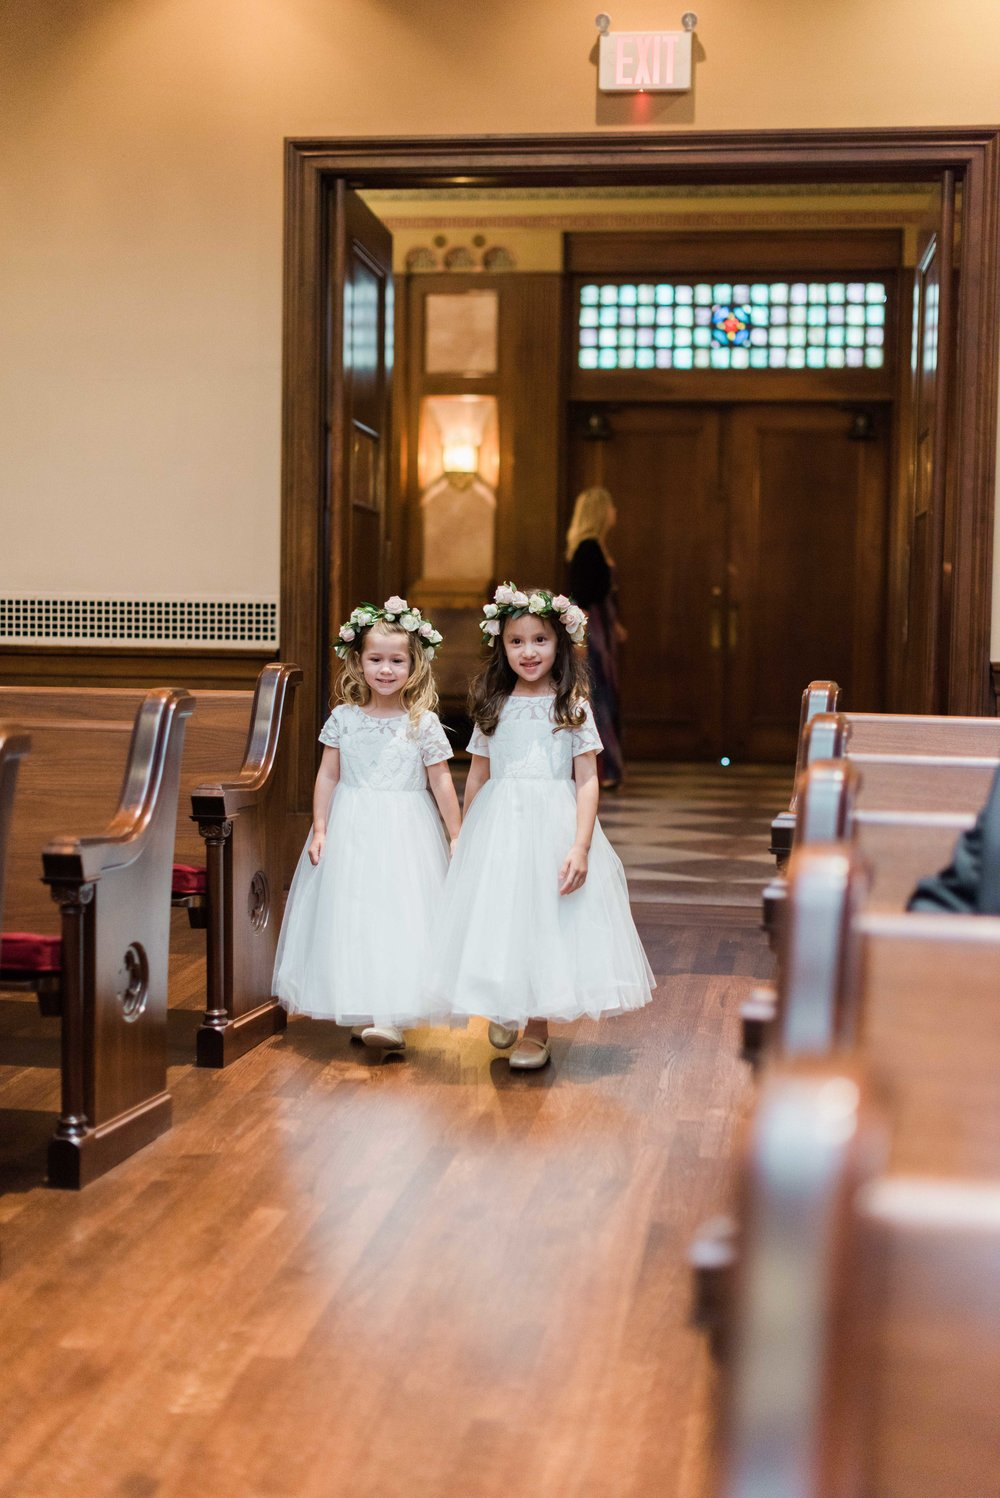 Fine-Art-Film-Houston-Wedding-Photographer-Best-Top-Luxury-Texas-Austin-Dallas-Destination-Dana-Fernandez-Photography-River-Oaks-Country-Club-South-Main-Baptist-Ceremony-Reception-Wedding-33.jpg